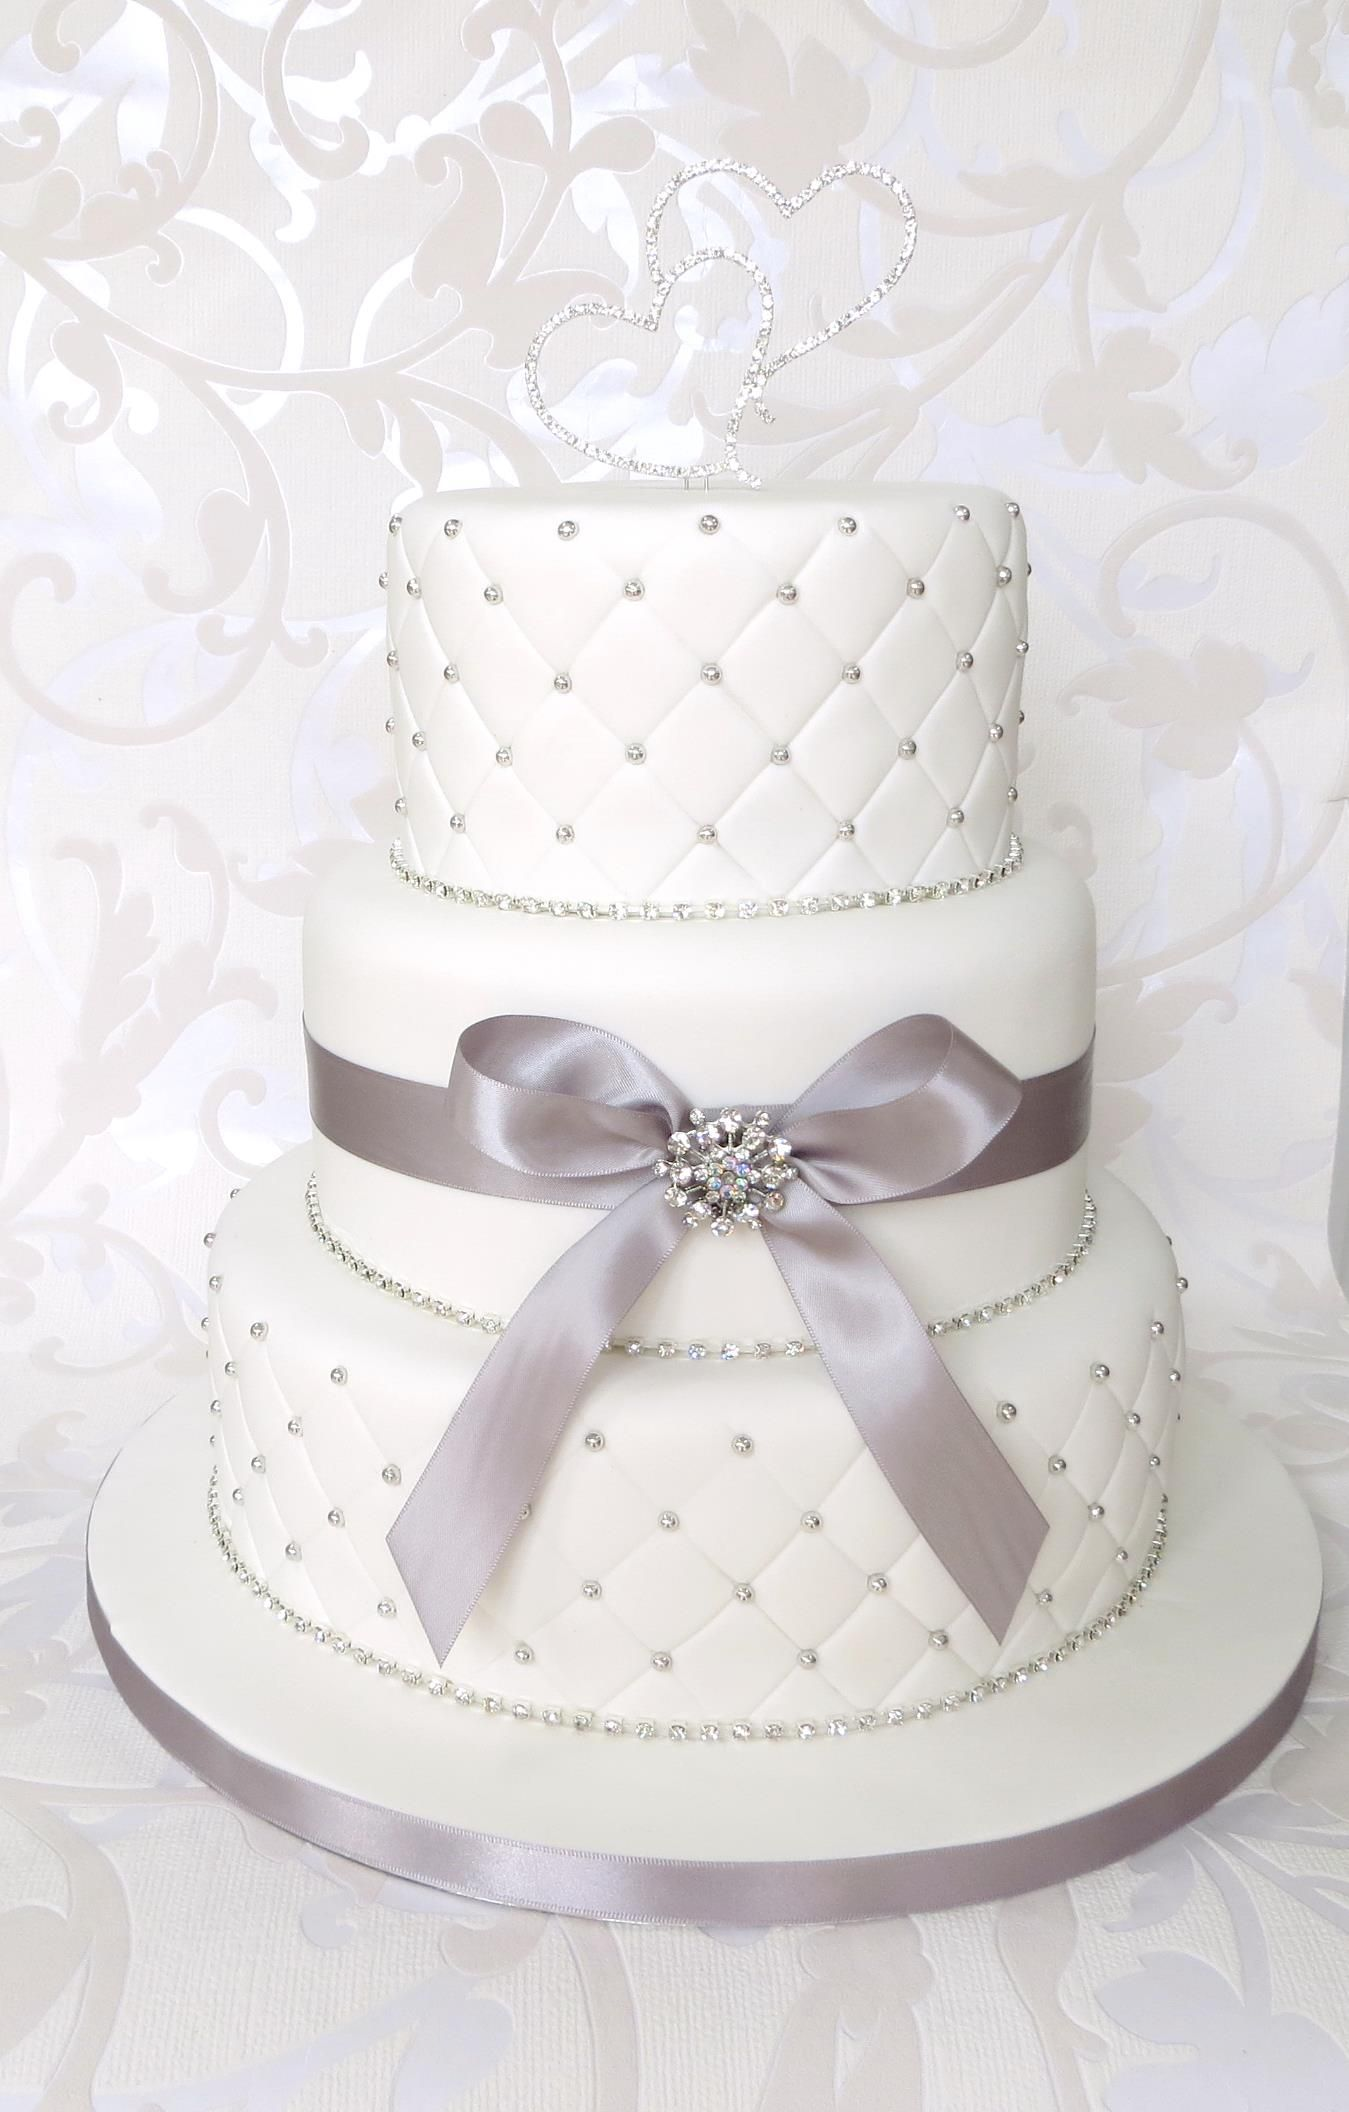 White Quilted Wedding Cake with Diamantes Brooch and Bow